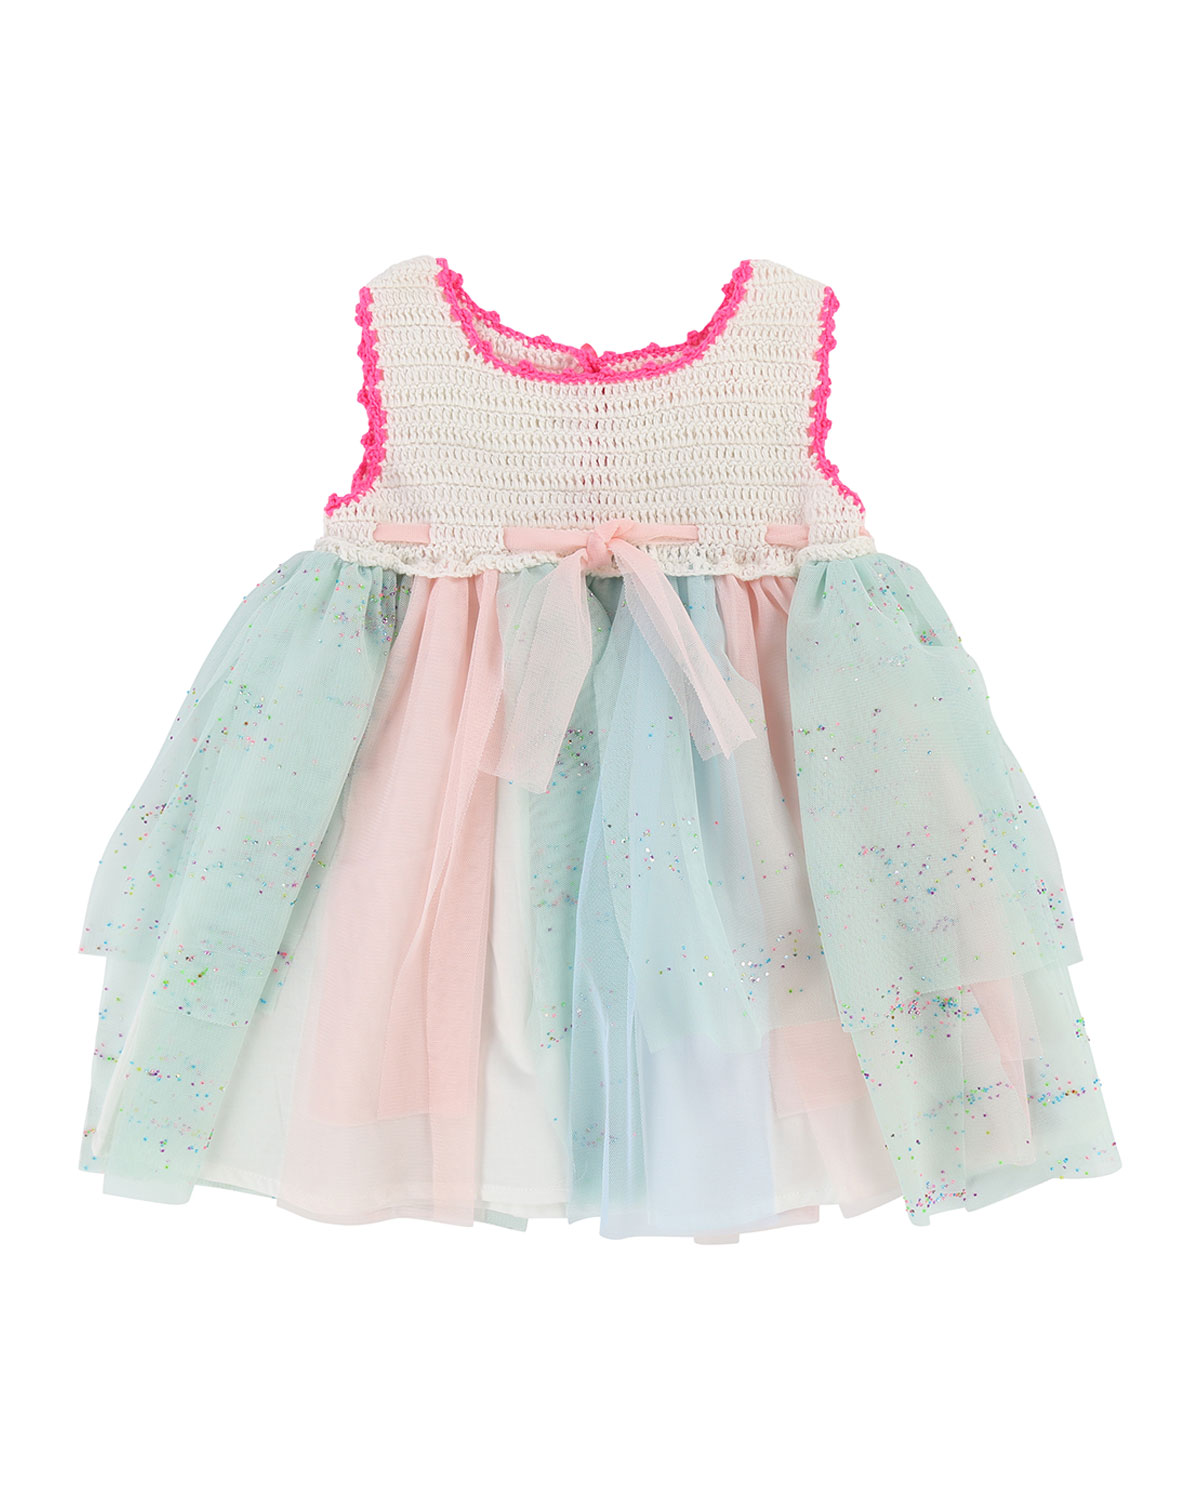 Crochet Dress w/ Glittered Tulle Skirt, Size 6-18 Months